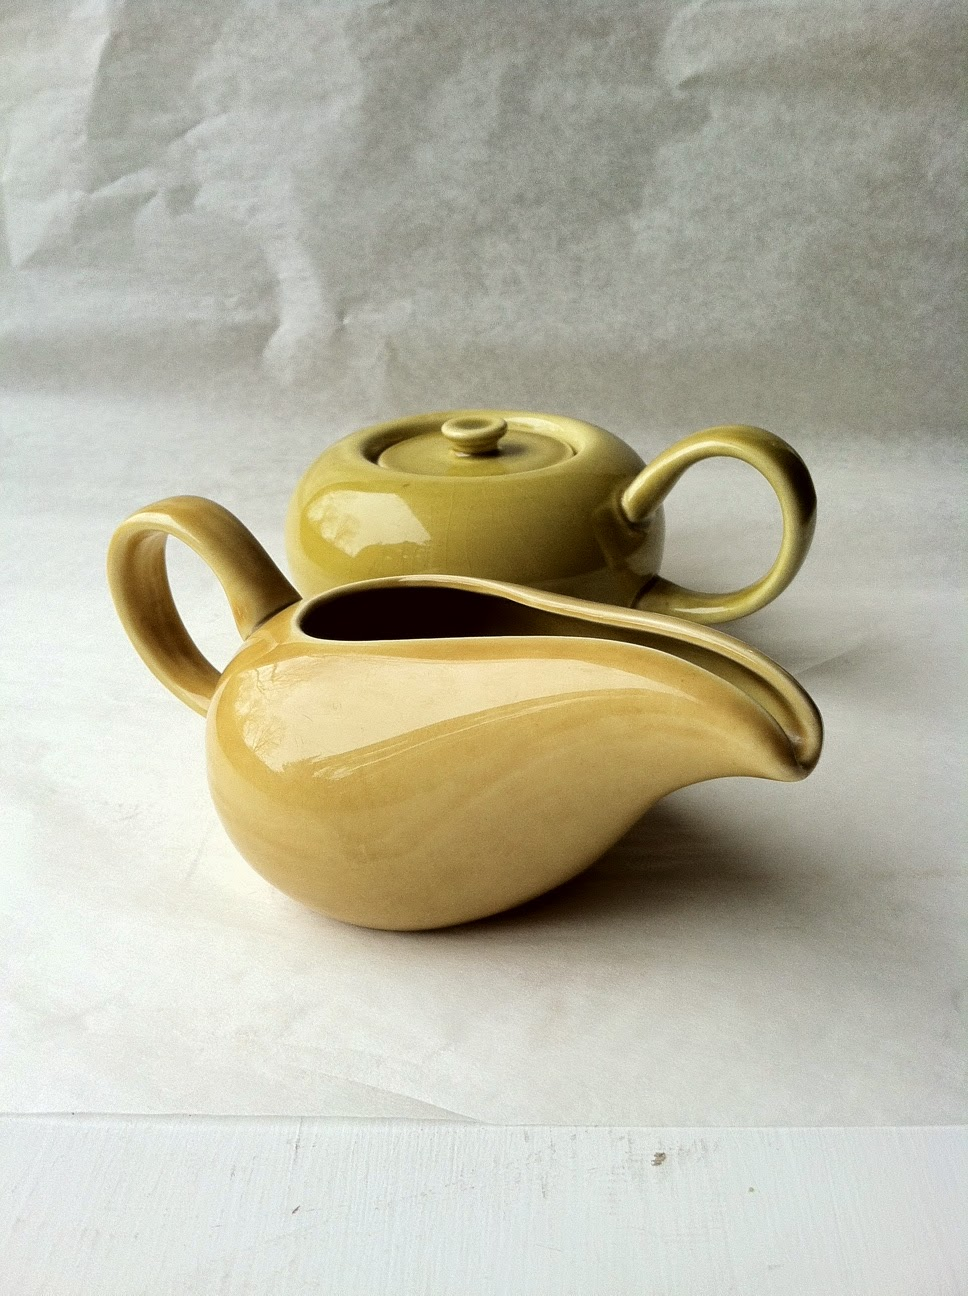 https://www.zibbet.com/second-story/russel-wright-sugar-bowl-and-creamer